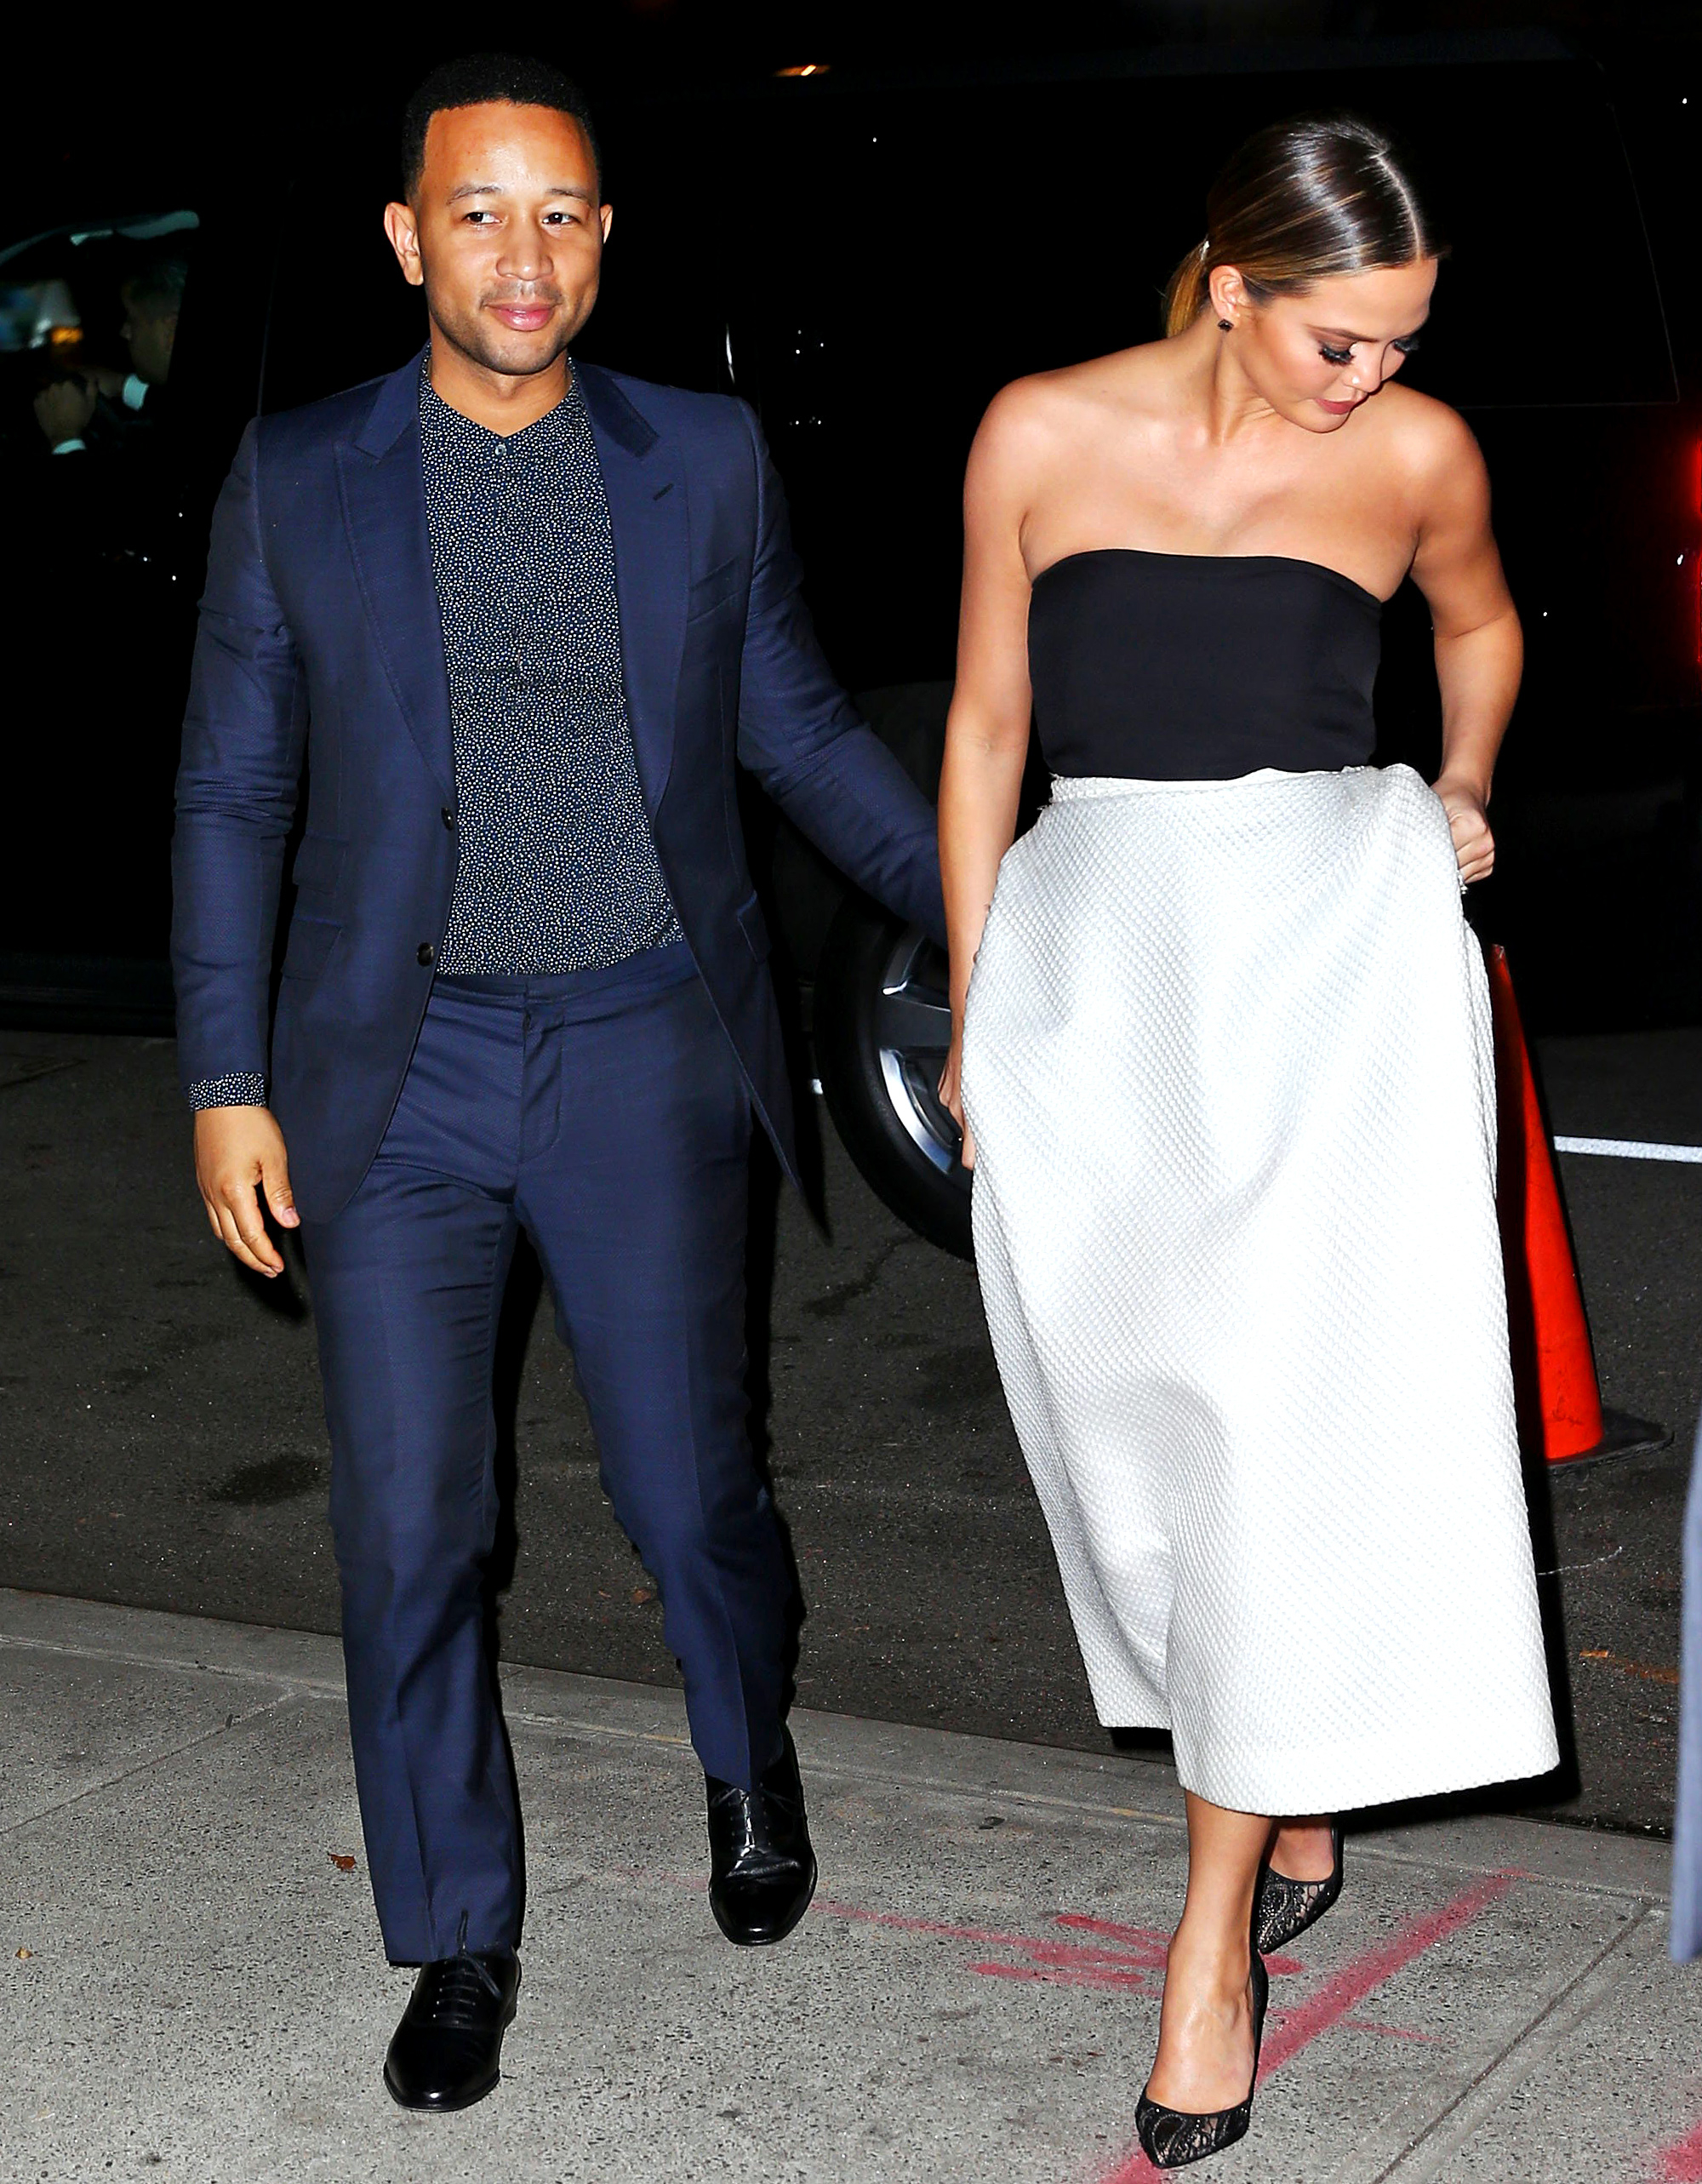 John Legend takes Chrissy Teigen out for her 30th birthday/Thanksgiving weekend in NYC.